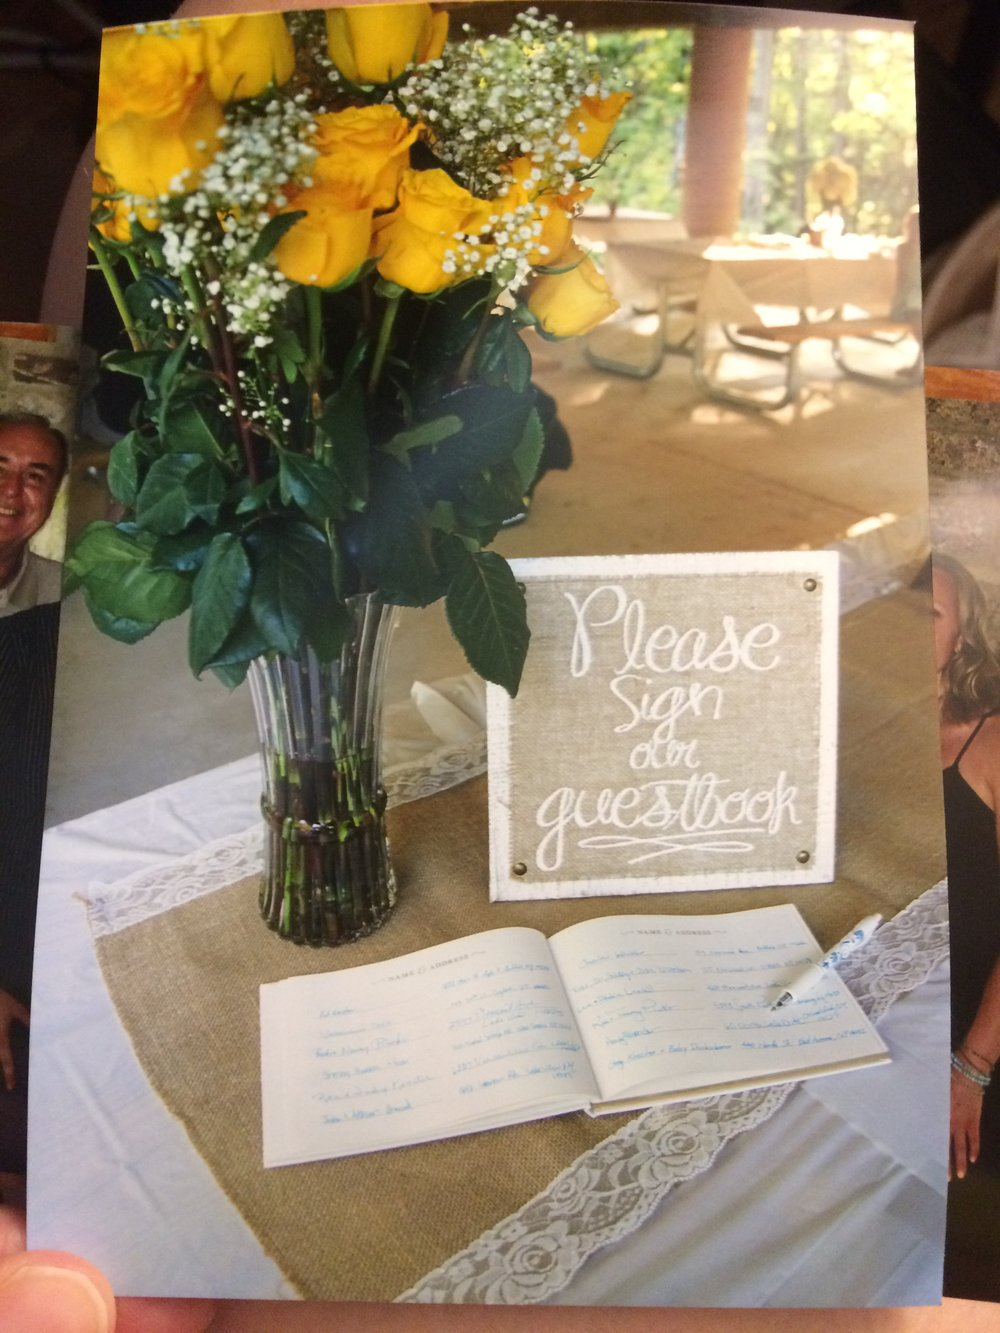 Our sign in book and yellow flowers picked out by my new niece.